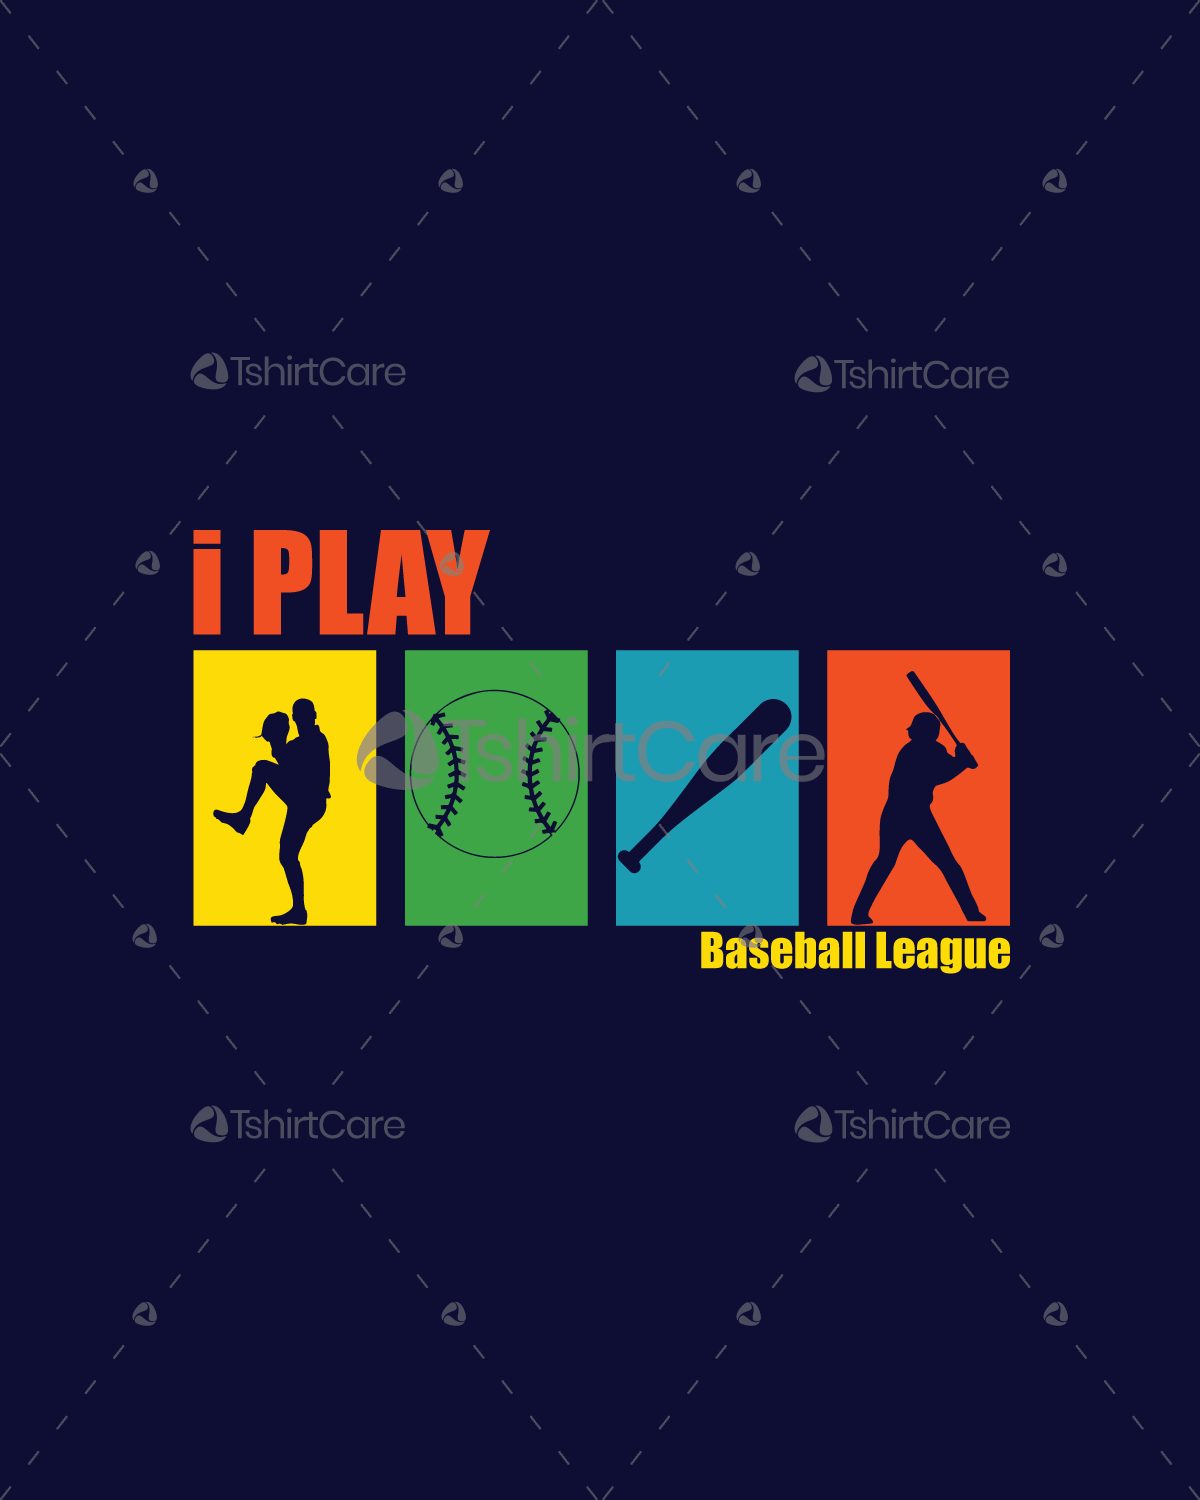 I Play Baseball League T Shirt Design Team Shirt Designs For Custom